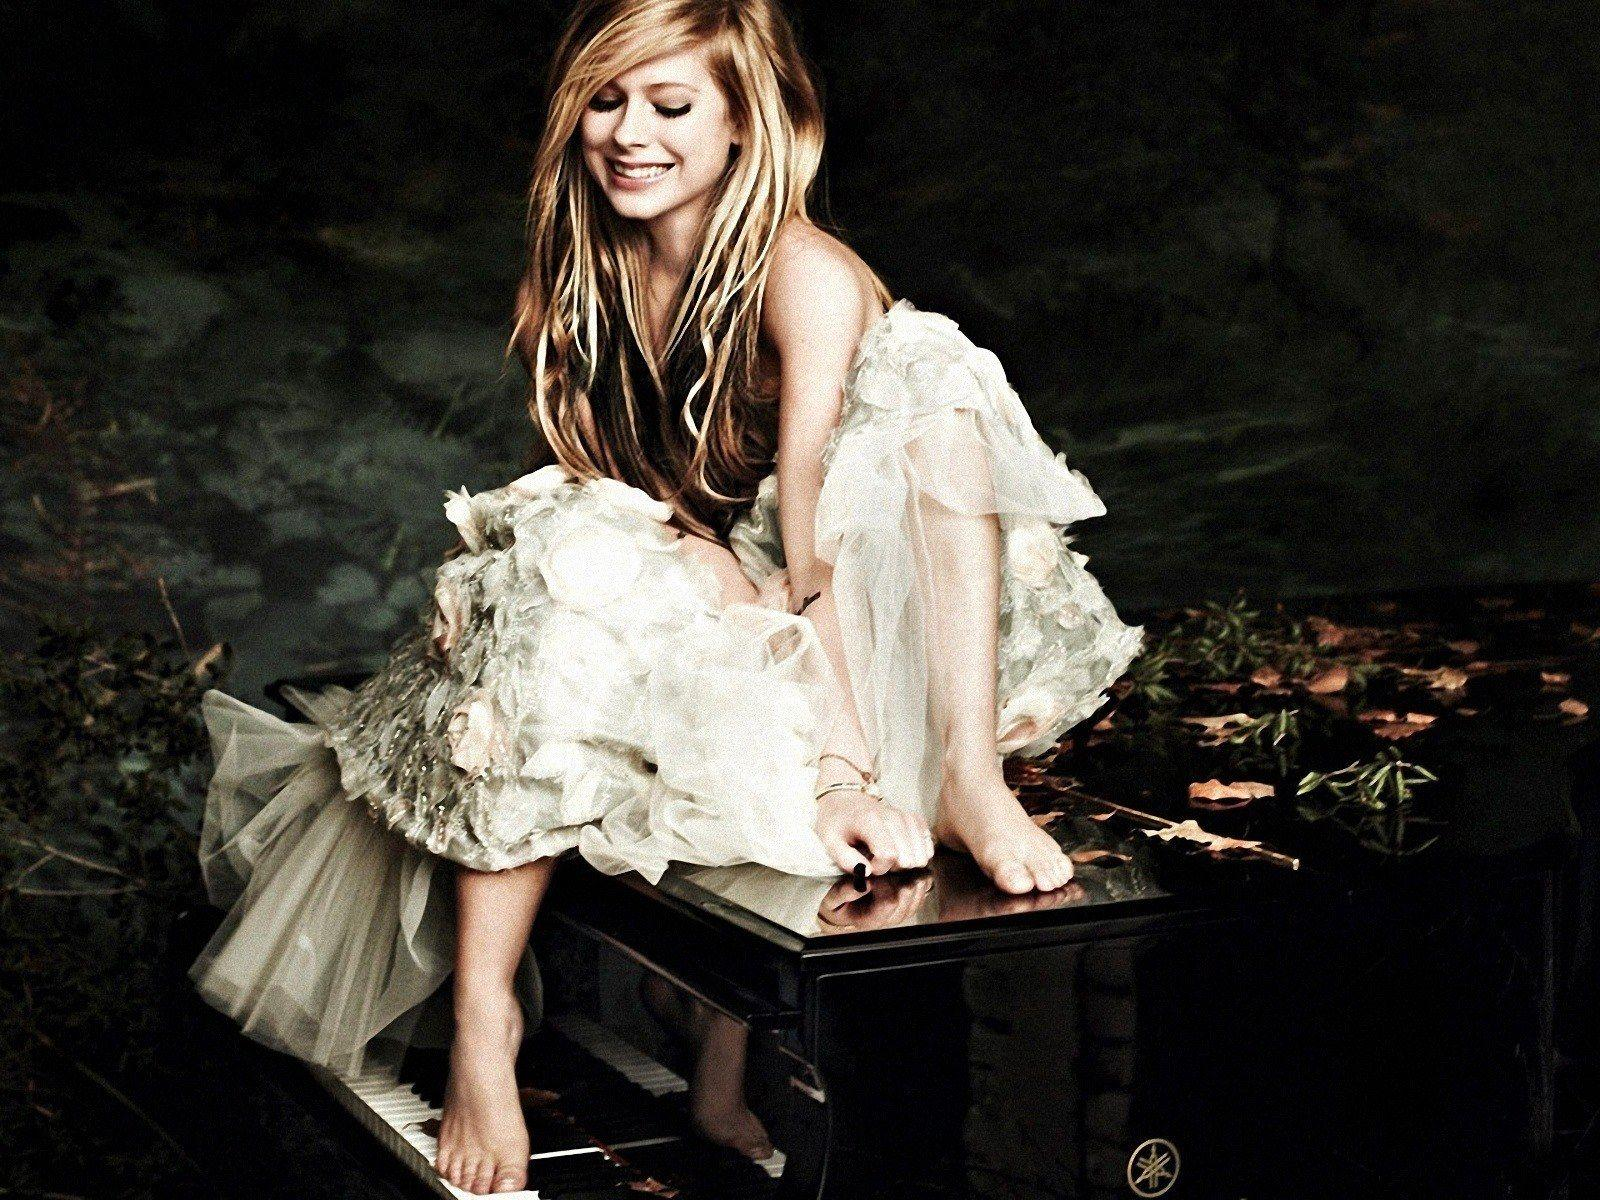 http://3.bp.blogspot.com/-eA-nqrfwkYY/TyFq3apGZrI/AAAAAAAACDU/RY3W8-mU7cQ/s1600/Avril-Lavigne-Wallpapers-For-Mac-1.jpg